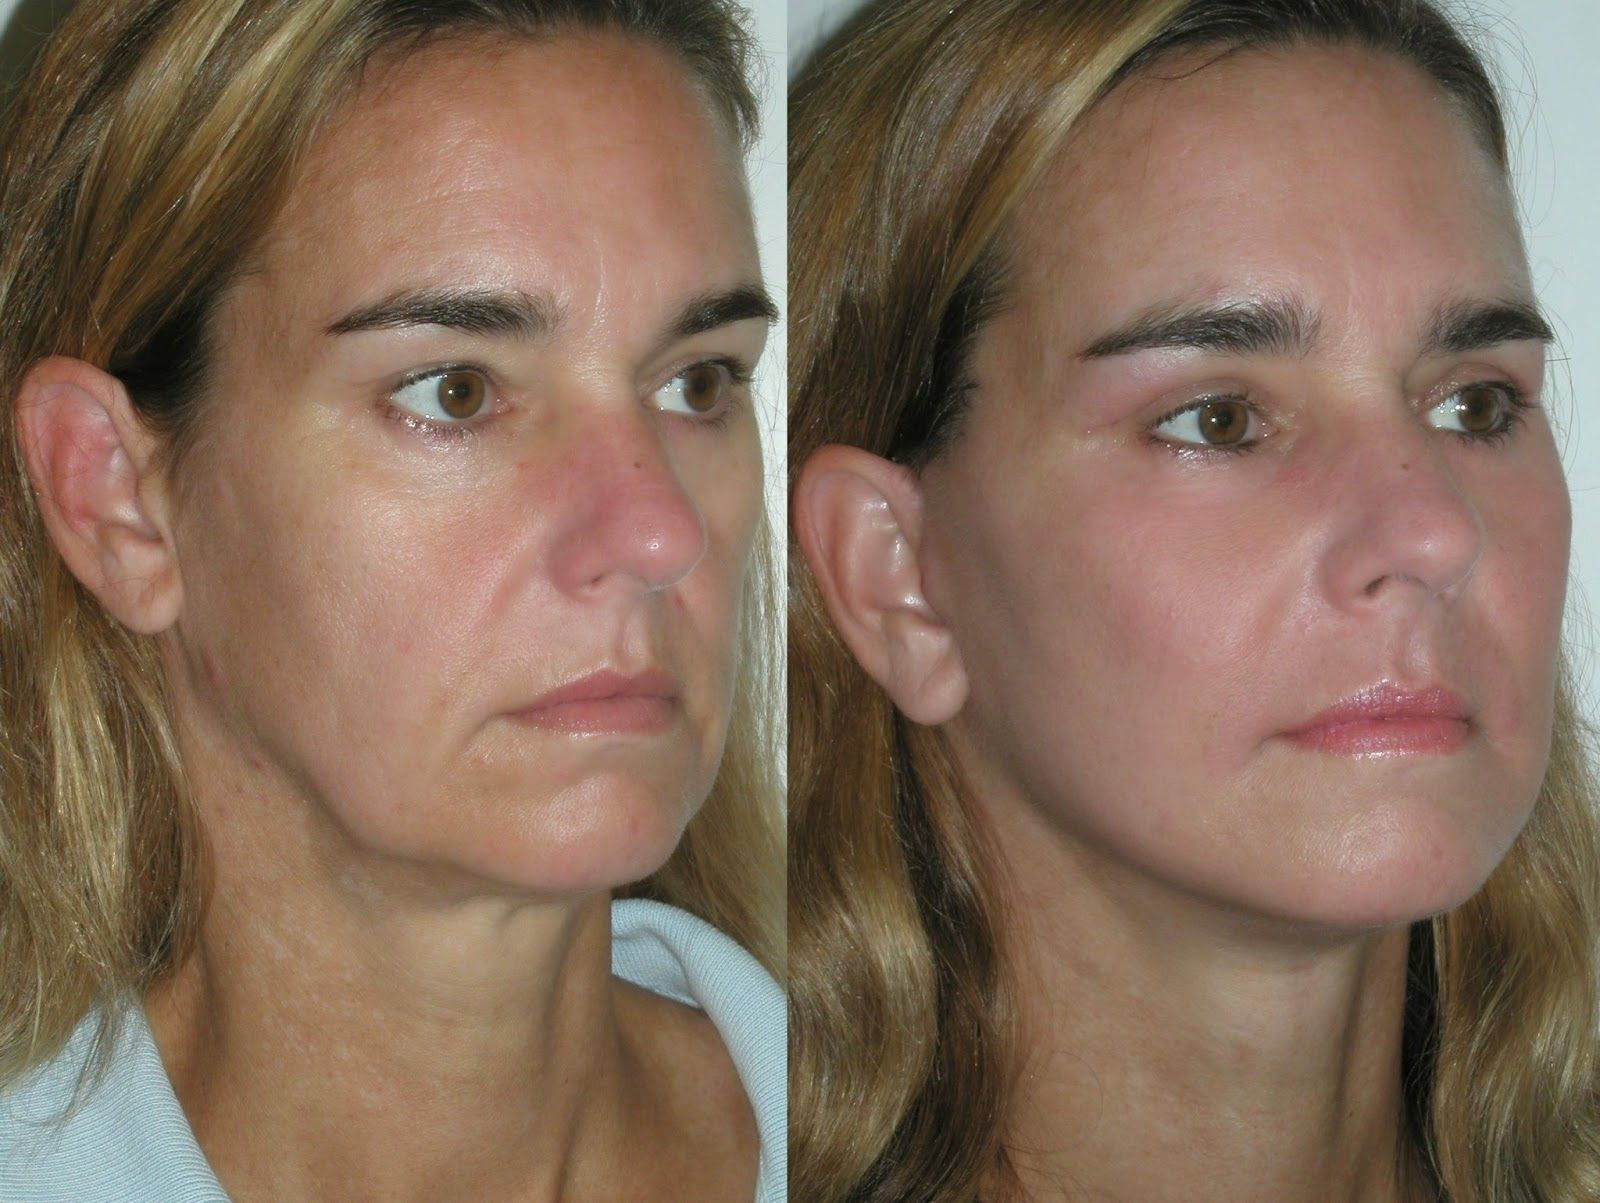 What are some face exercises for sagging jowls?